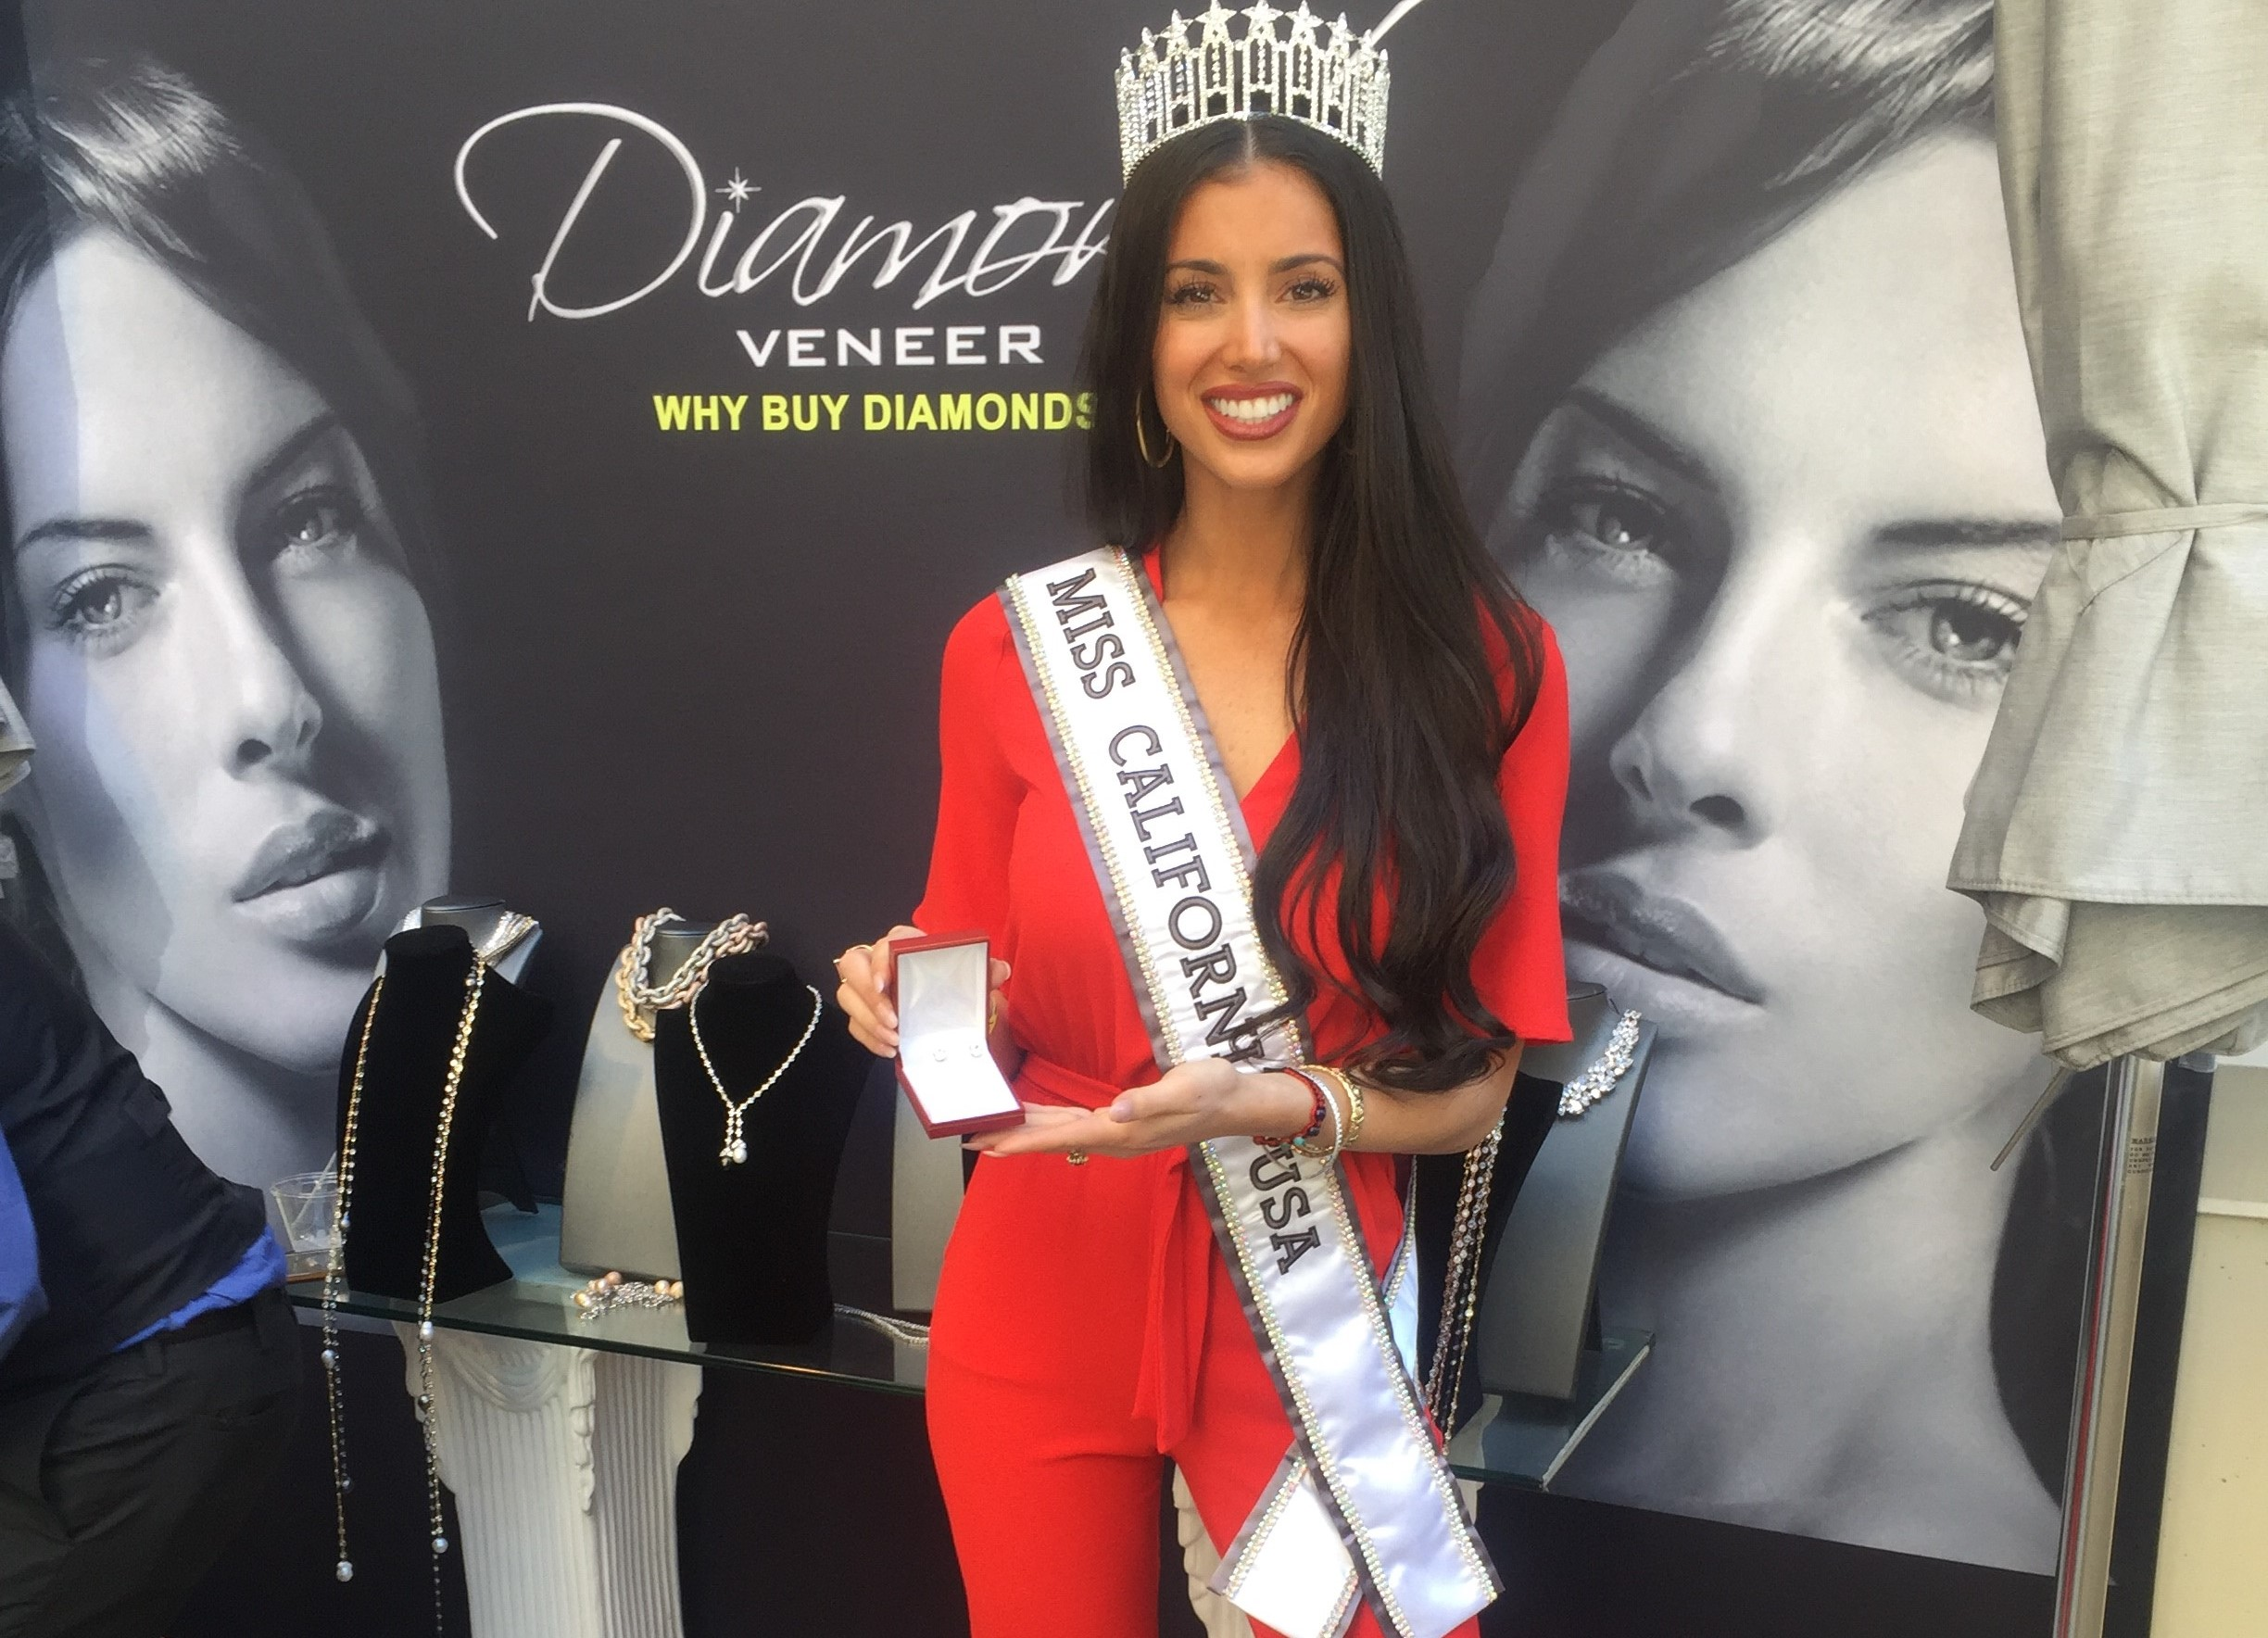 Ms California for Diamond Veneer Travel Jewelry